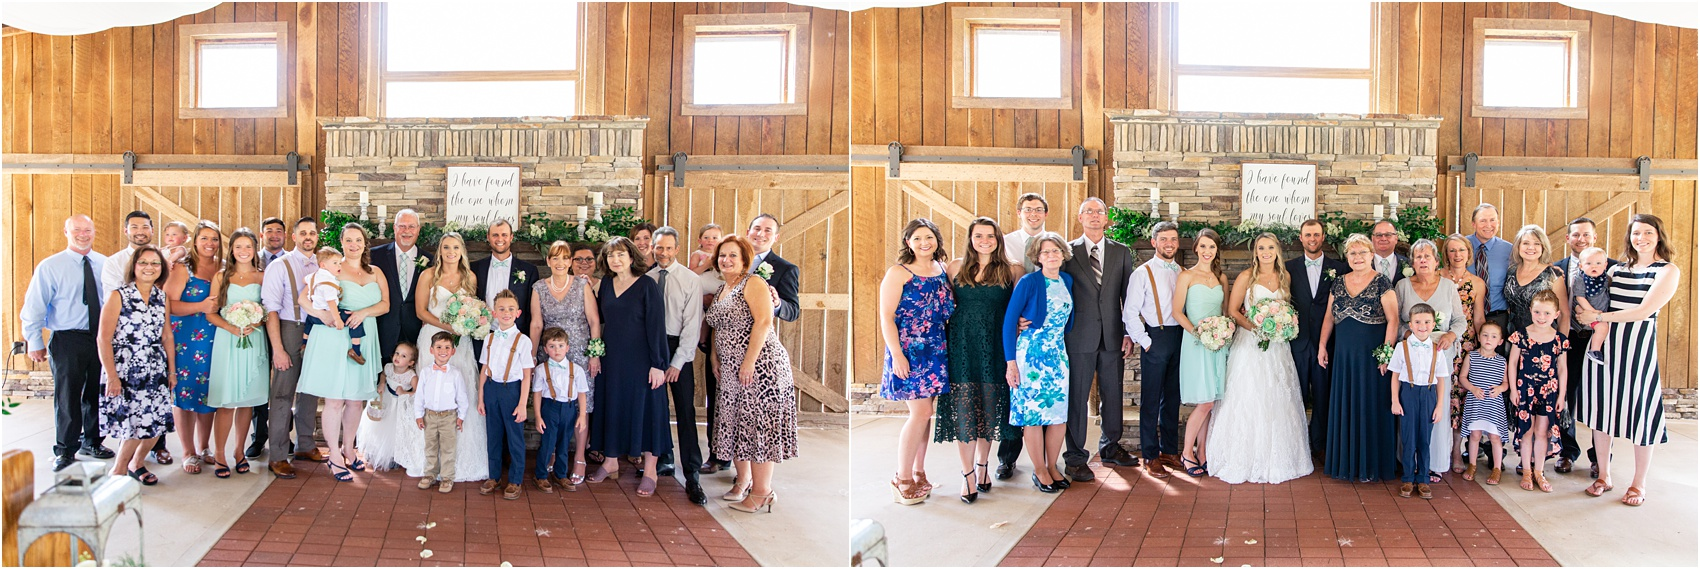 Savannah Eve Photography LLC- Wandolowski-Boyer Wedding-Blog-47.jpg